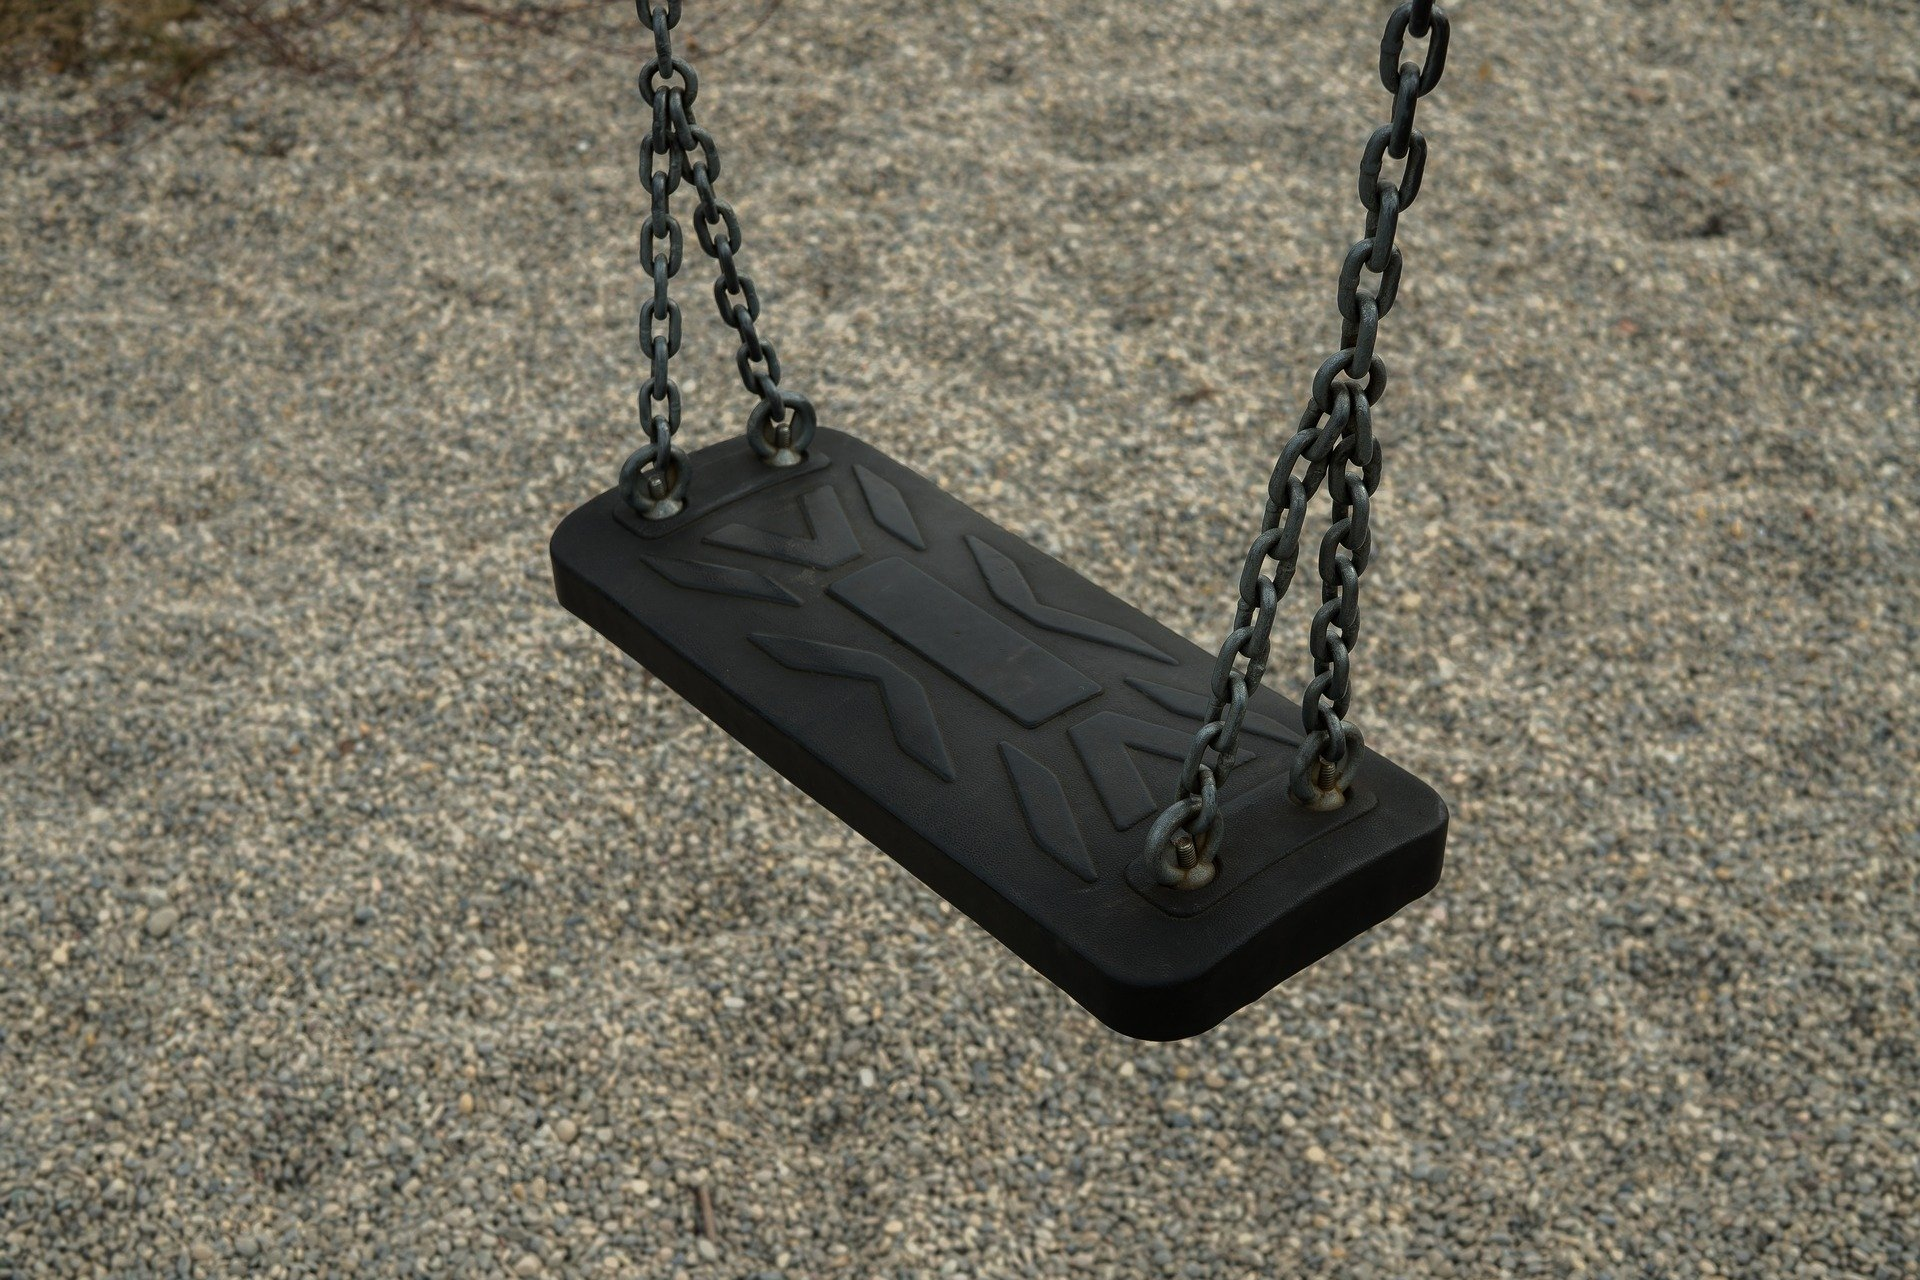 swings - exercise at a local park